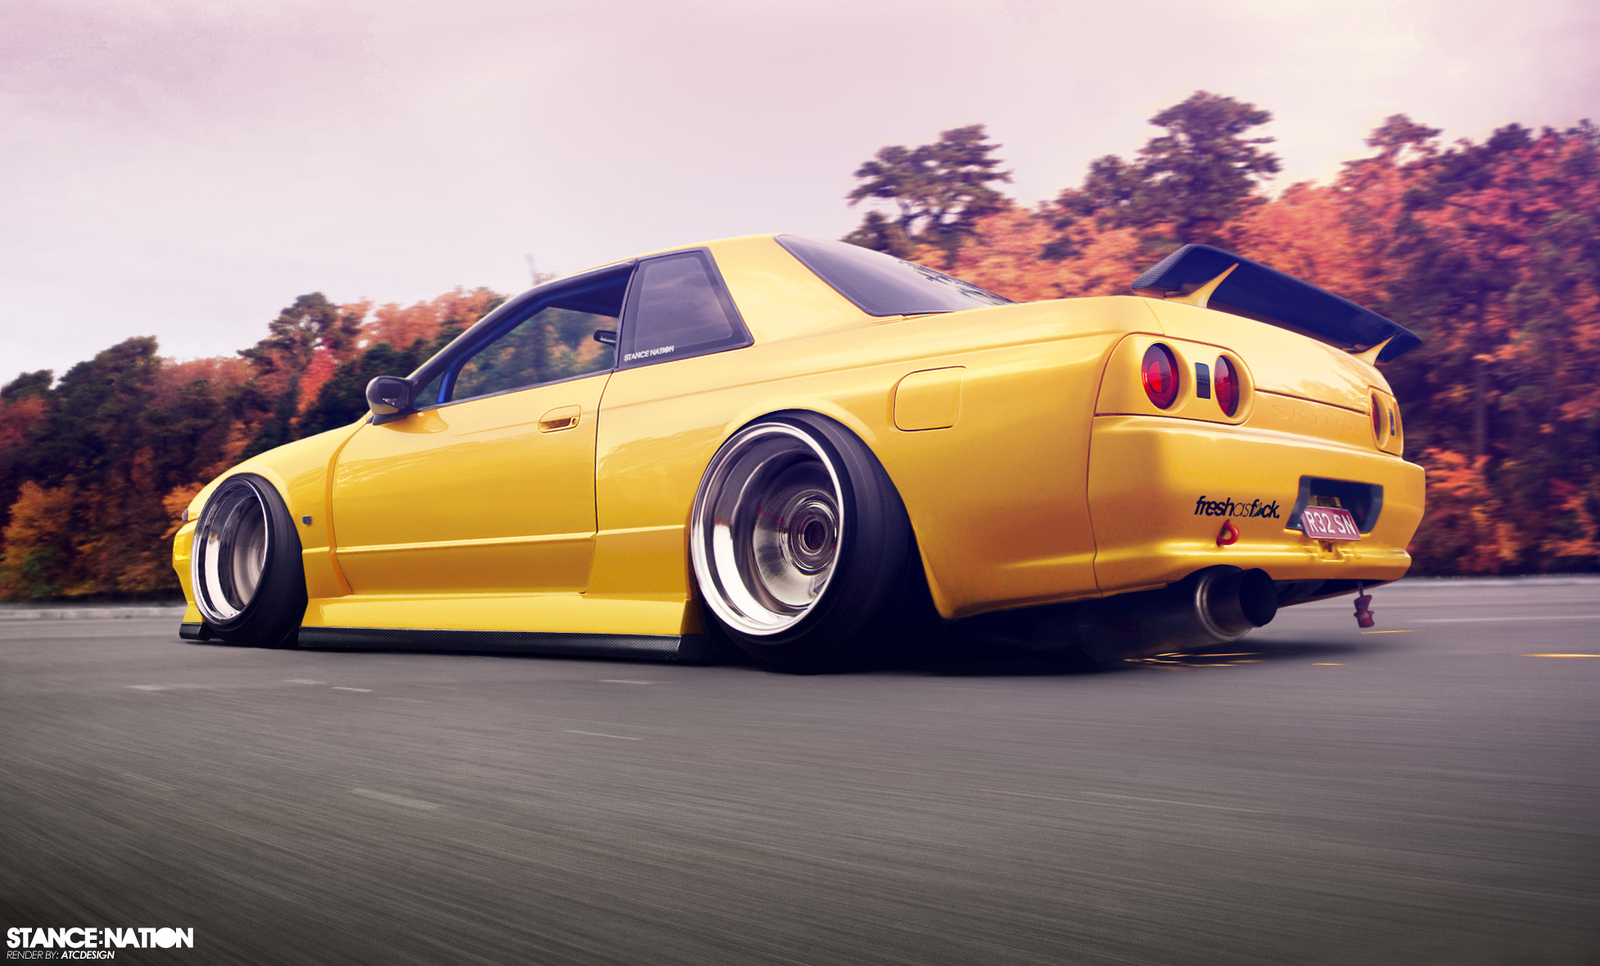 Render By ATCDESIGN Exclusively For StanceNation